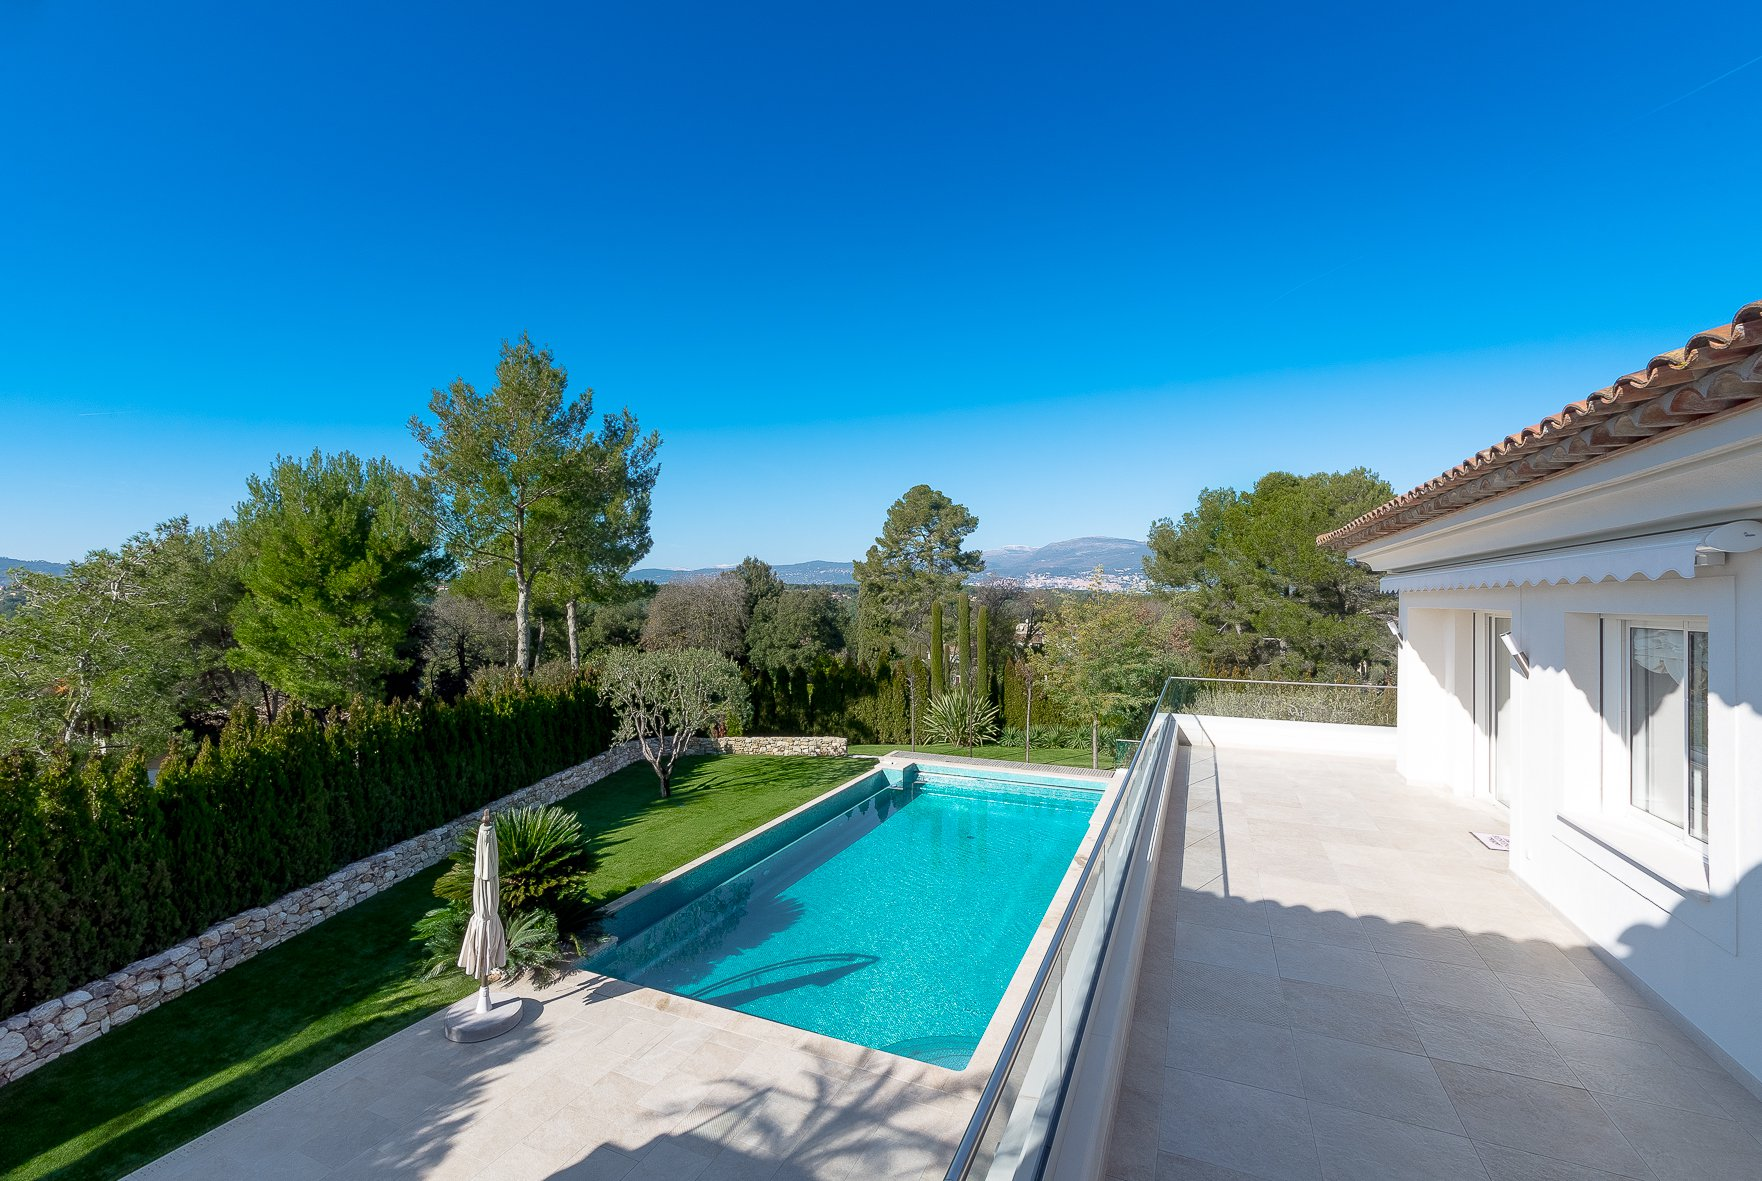 MOUGINS - ROYAL GOLF CLUB - SUPERBE VILLA CONTEMPORAINE